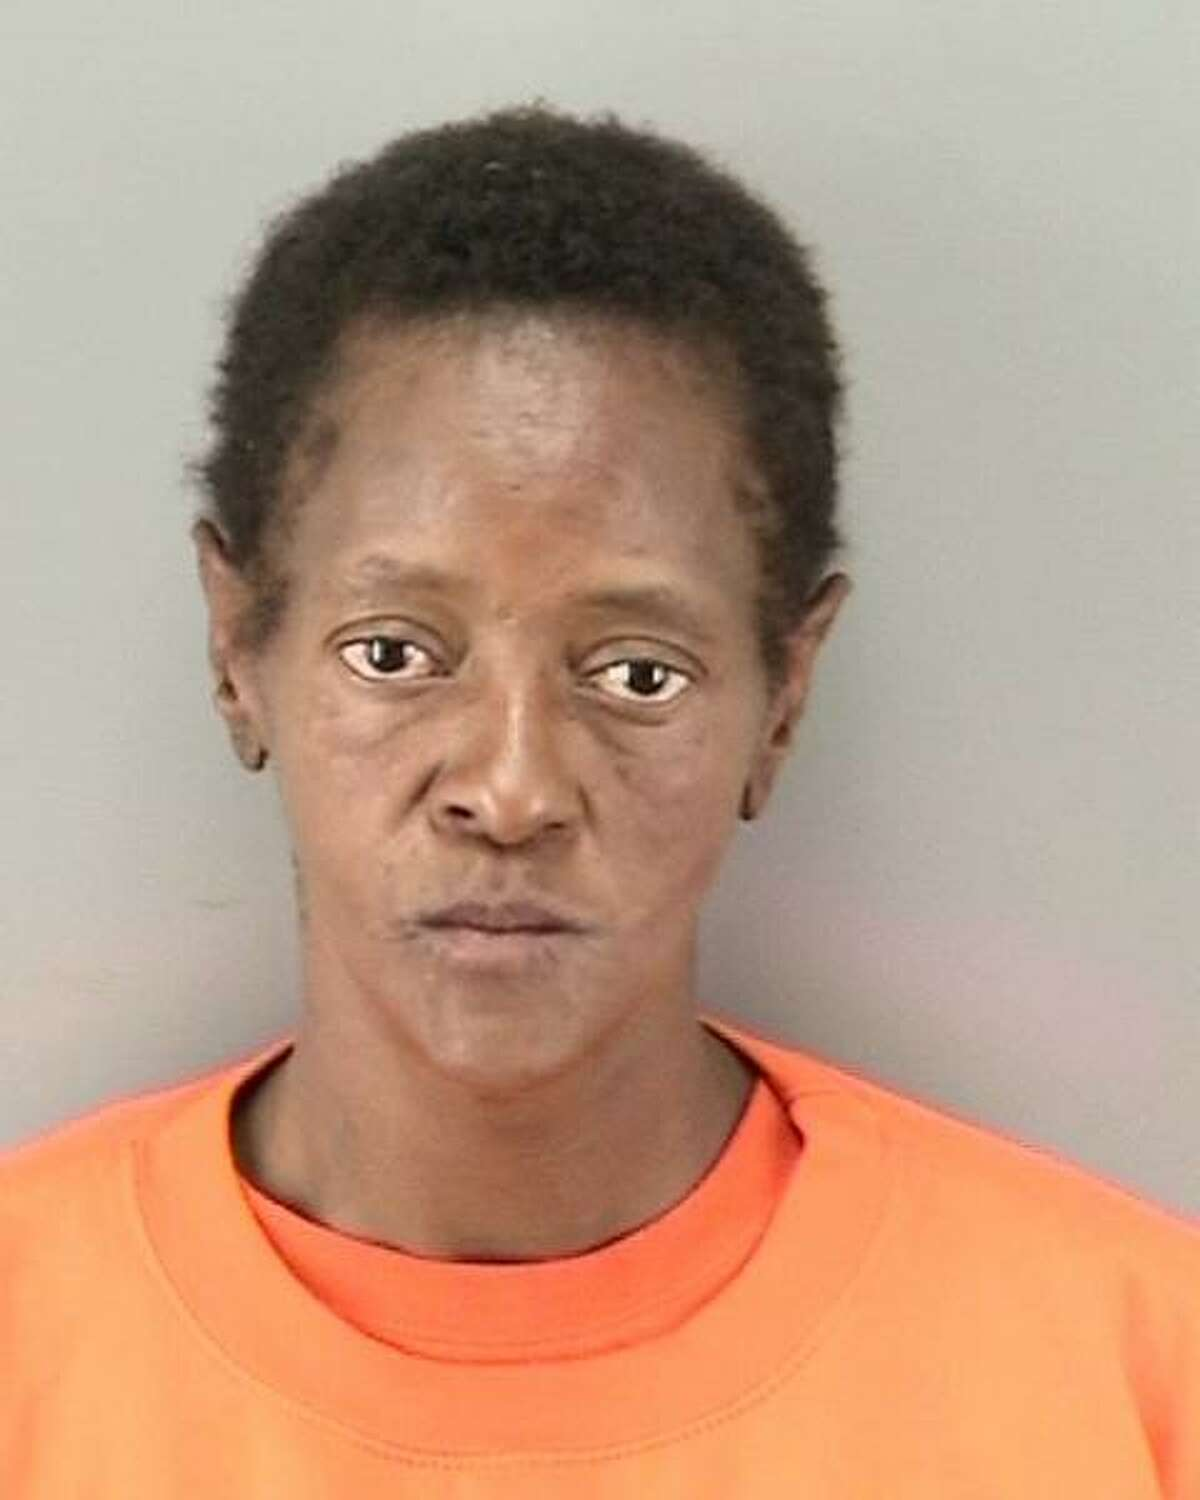 Jacqueline Miller, 51, was arrested on suspicion of an aggravated assault and elder abuse hate crime, police said.